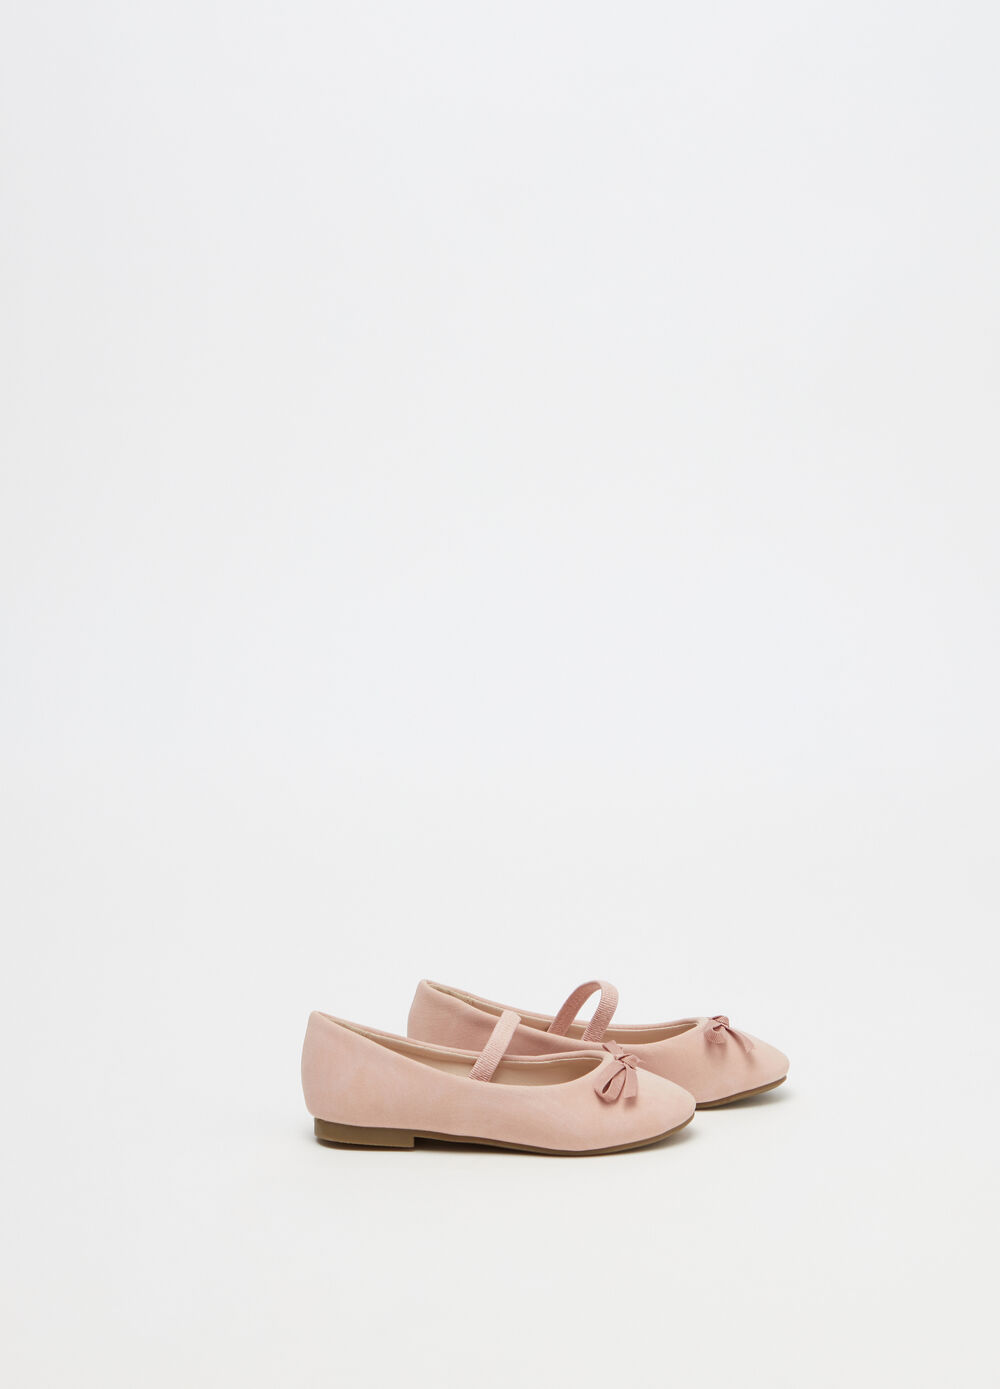 Ballerina flats with strap and bow